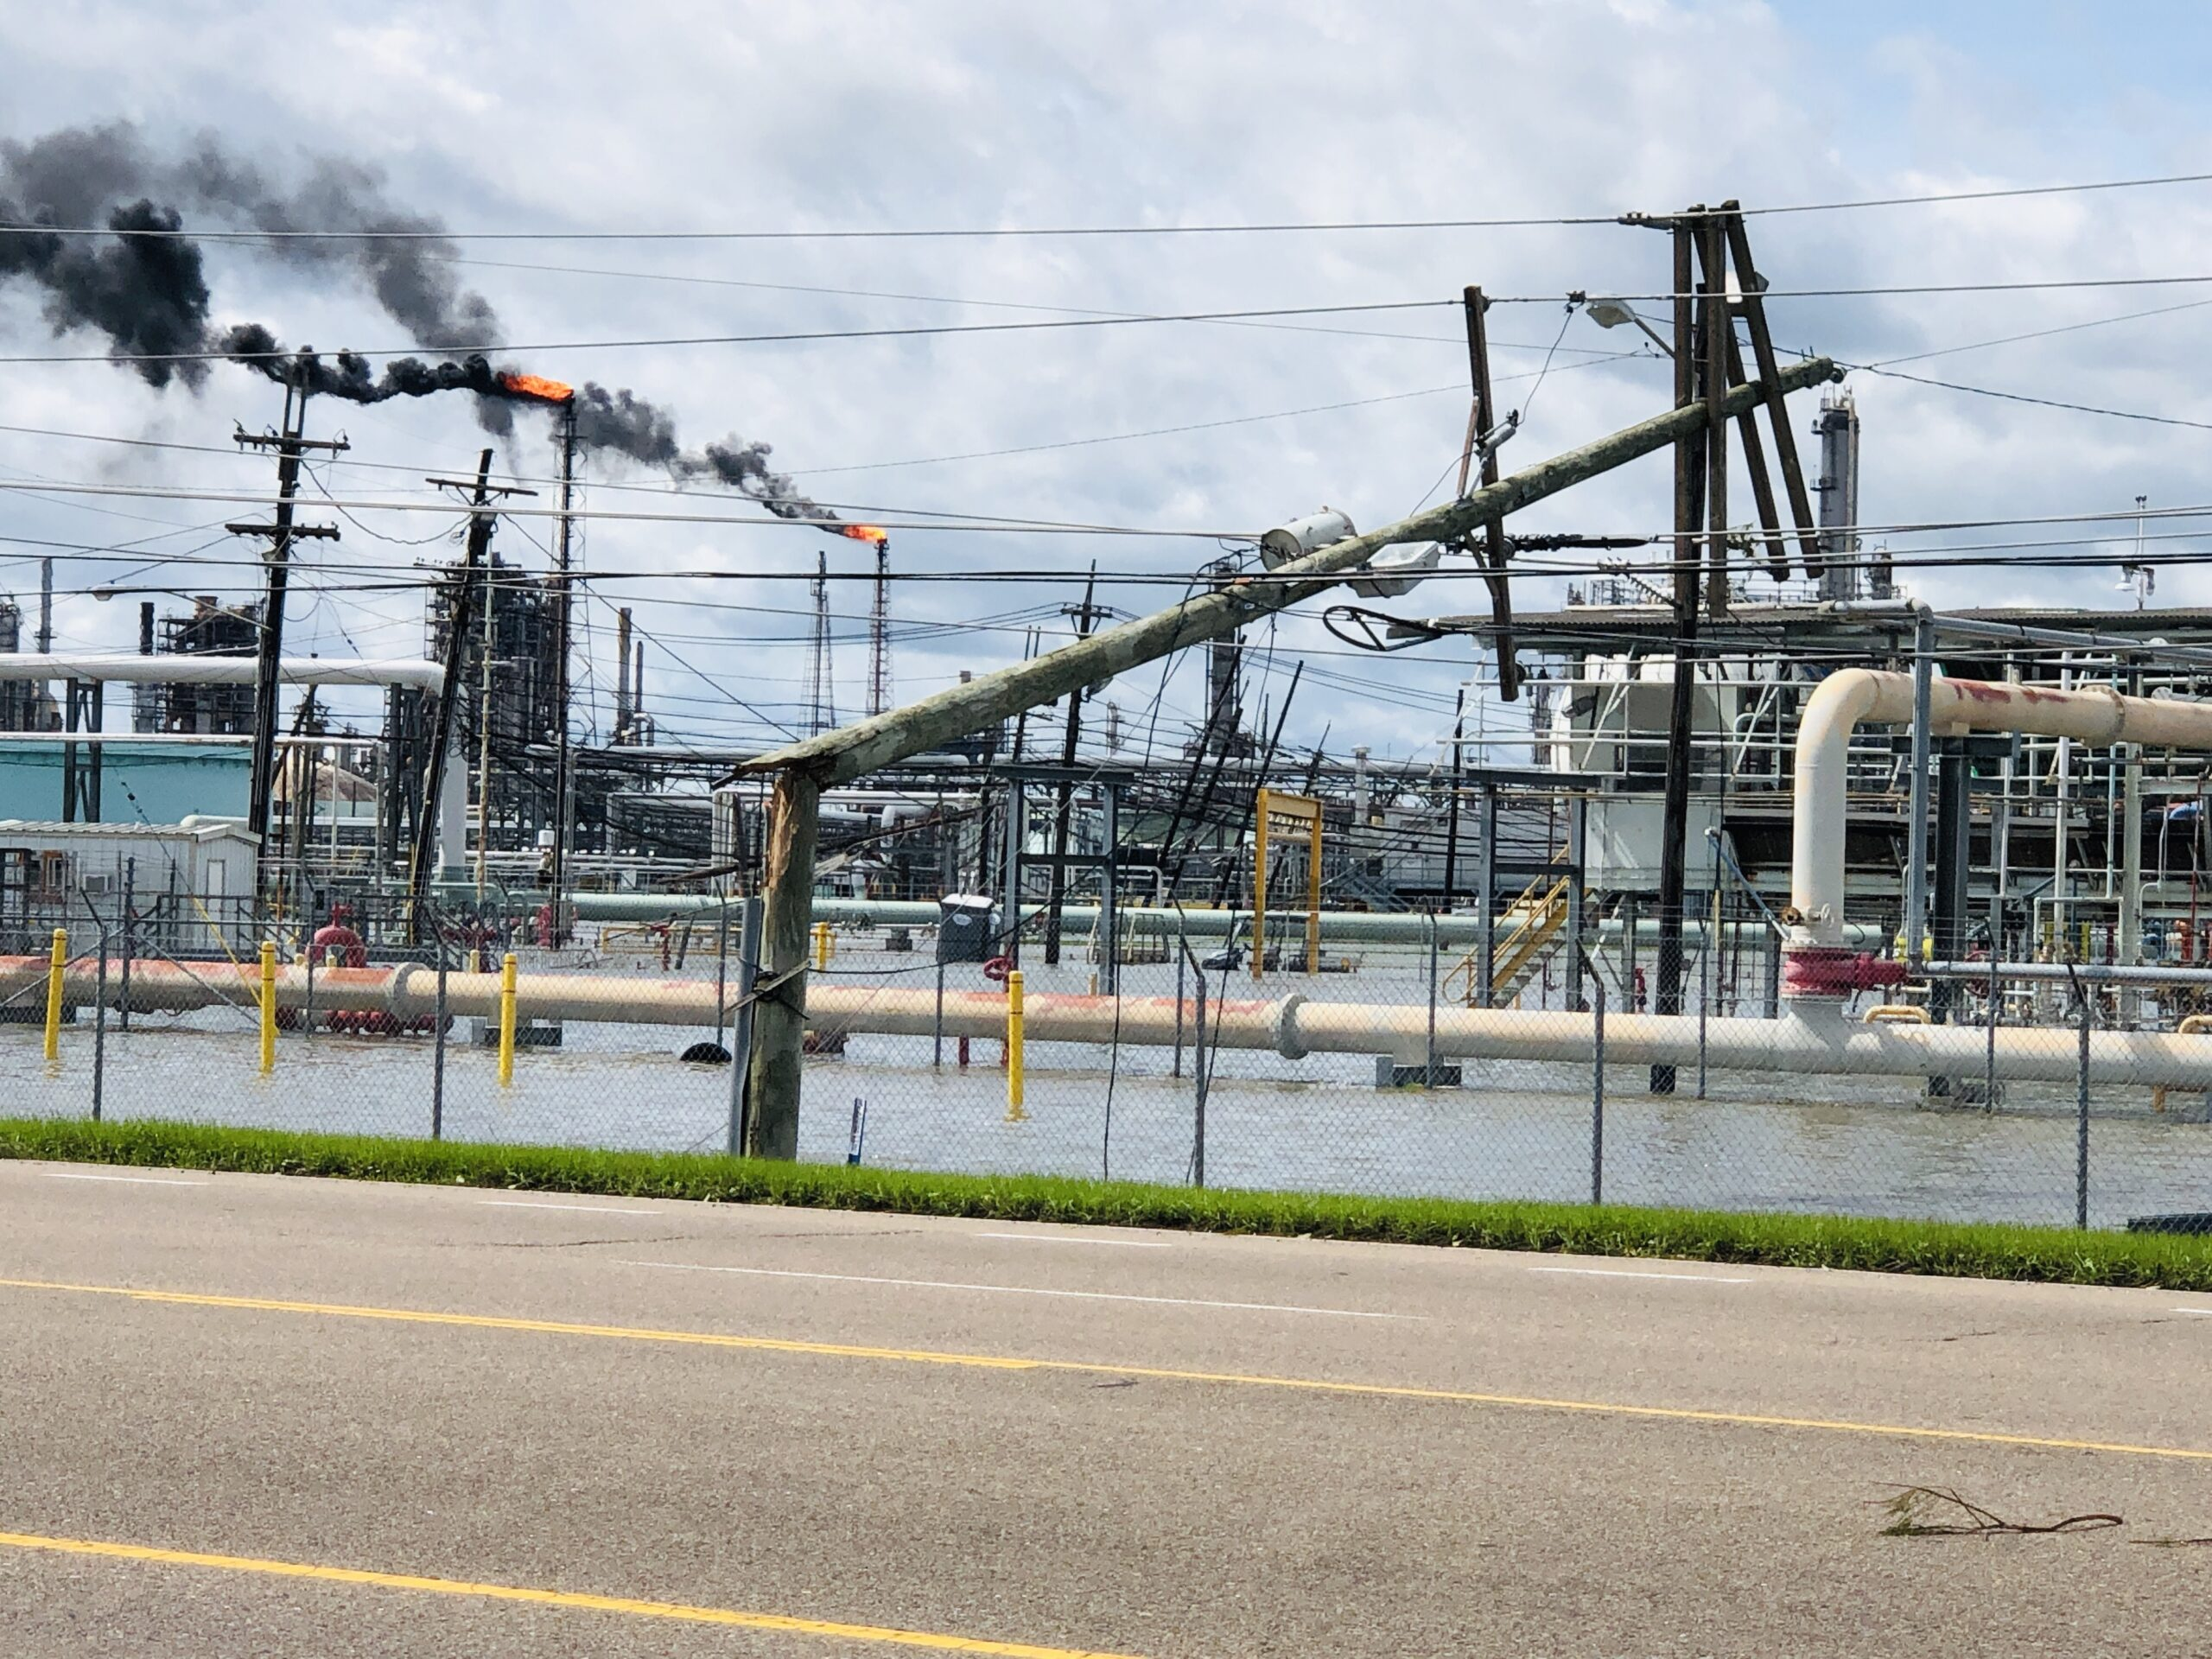 Fuel shortage among priorities in Louisiana's hurricane recovery